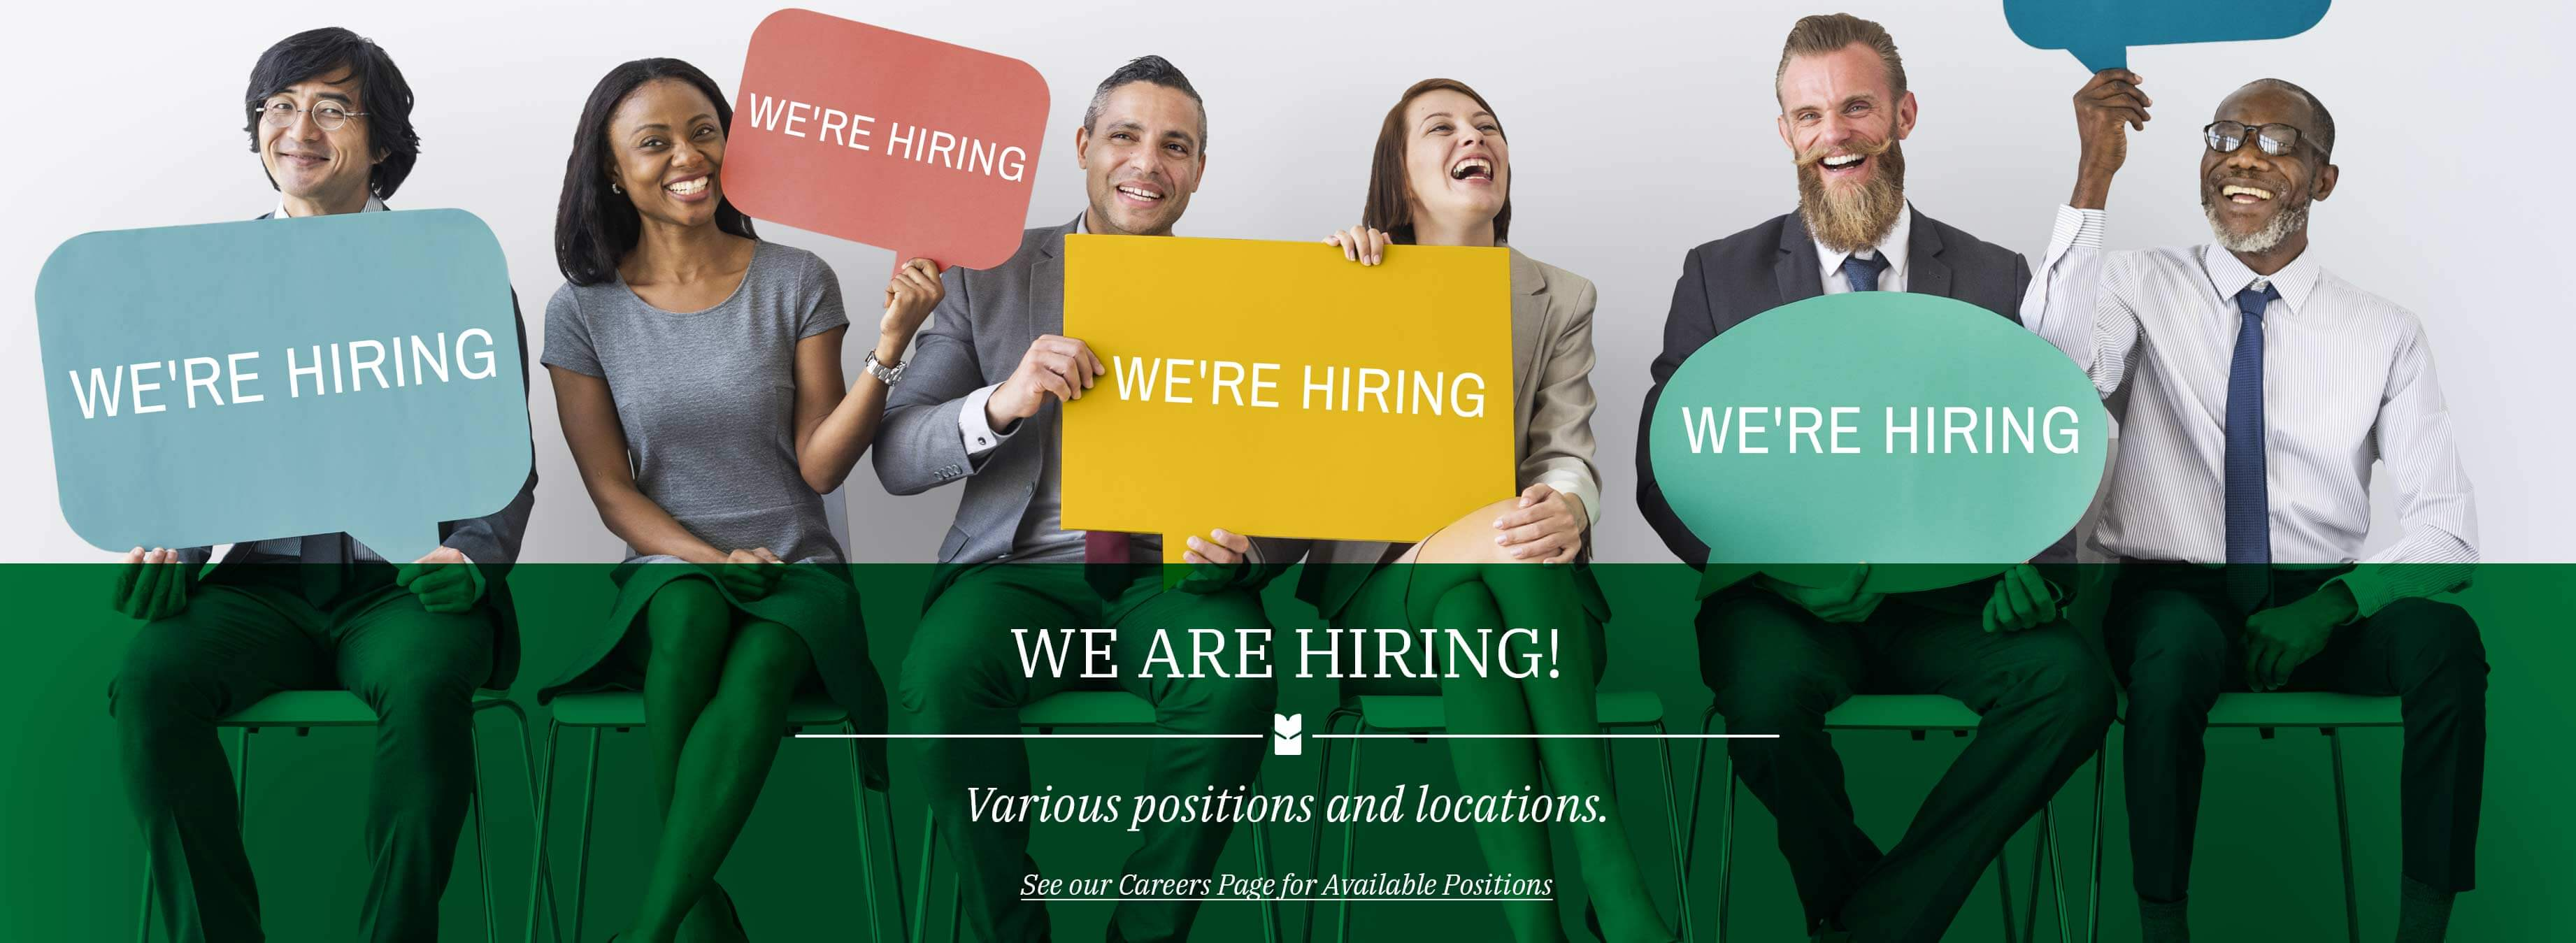 We are hiring! various positions and locations. see our careers page for available positions